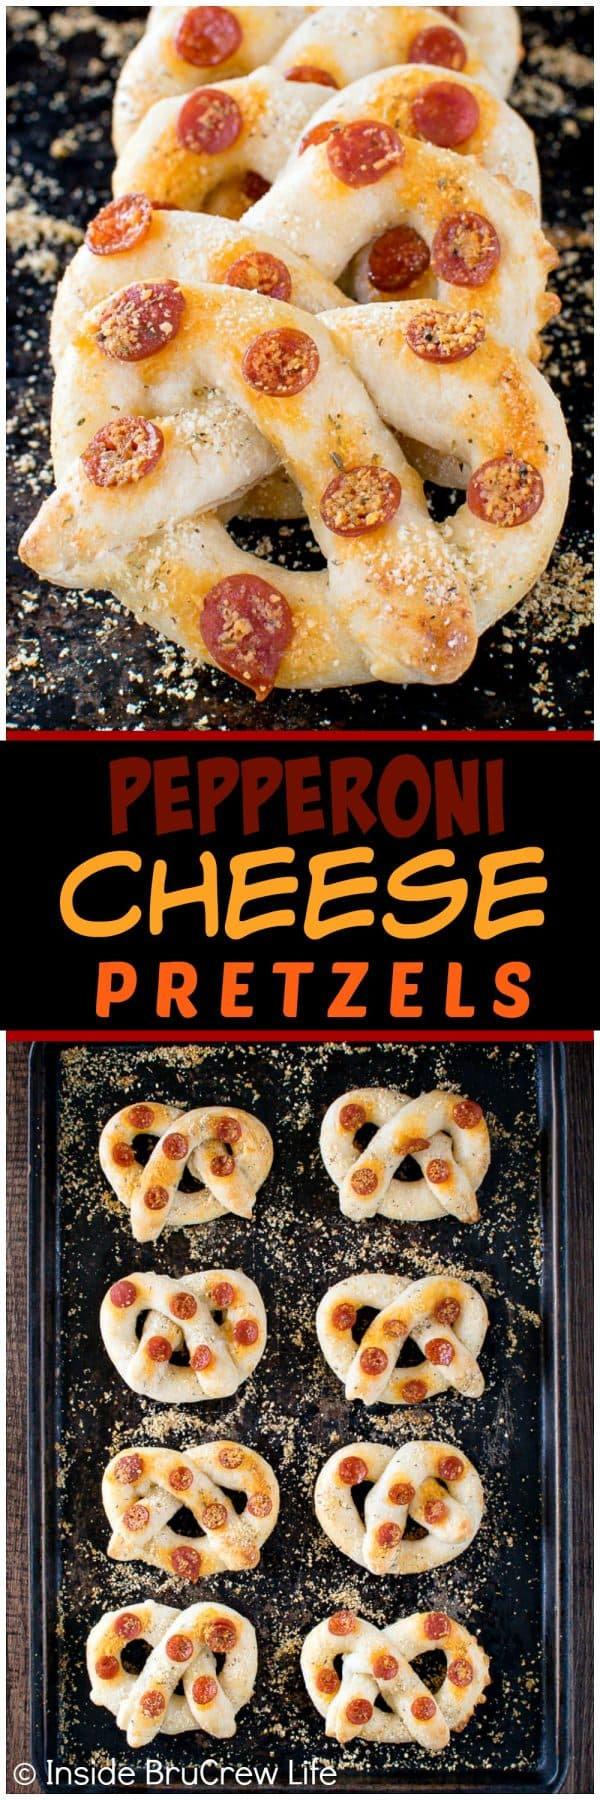 Easy Pepperoni Cheese Pretzels - 3 kinds of cheese and mini pepperonis make these easy breadsticks disappear in a hurry! Great for game day or dinner!